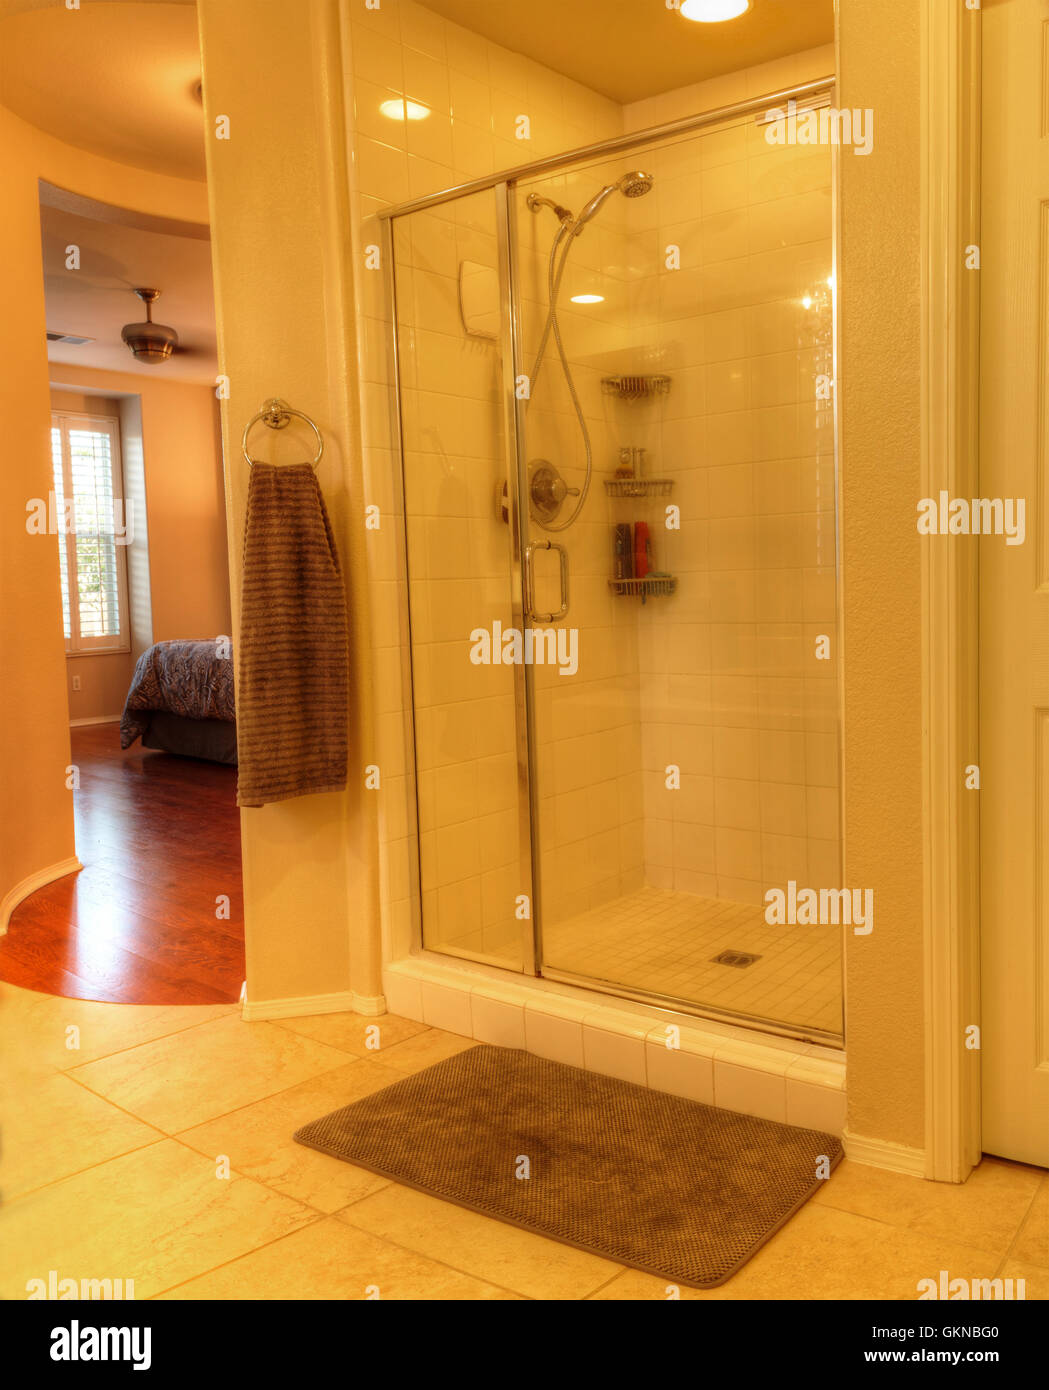 Bathroom Fixtures Irvine Ca irvine, ca, usa – august 19, 2016: shower with a glass door in a